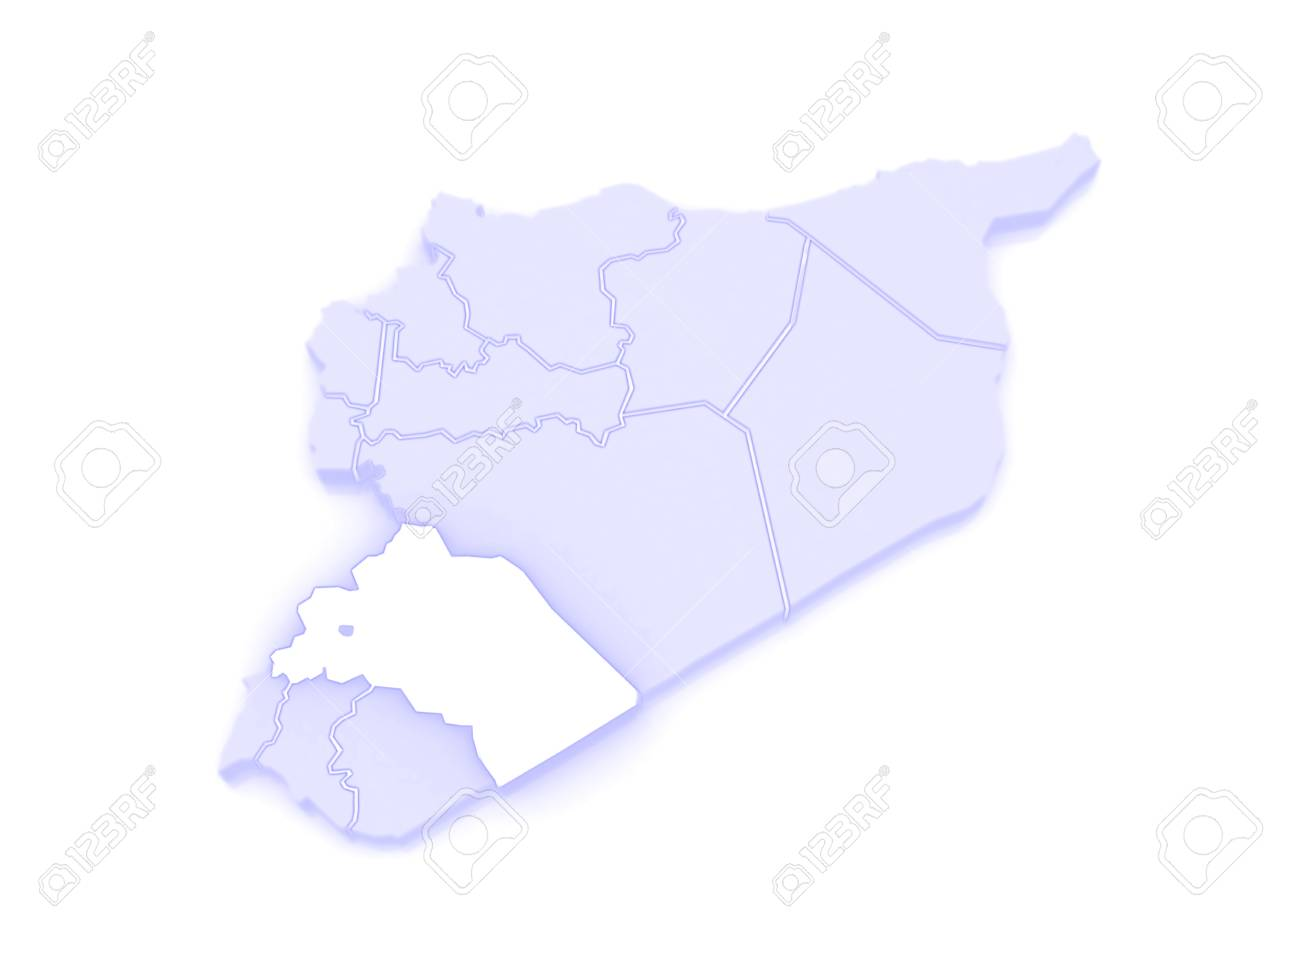 Map Of Reef Damascus. Syria. 3d Stock Photo, Picture And Royalty ...